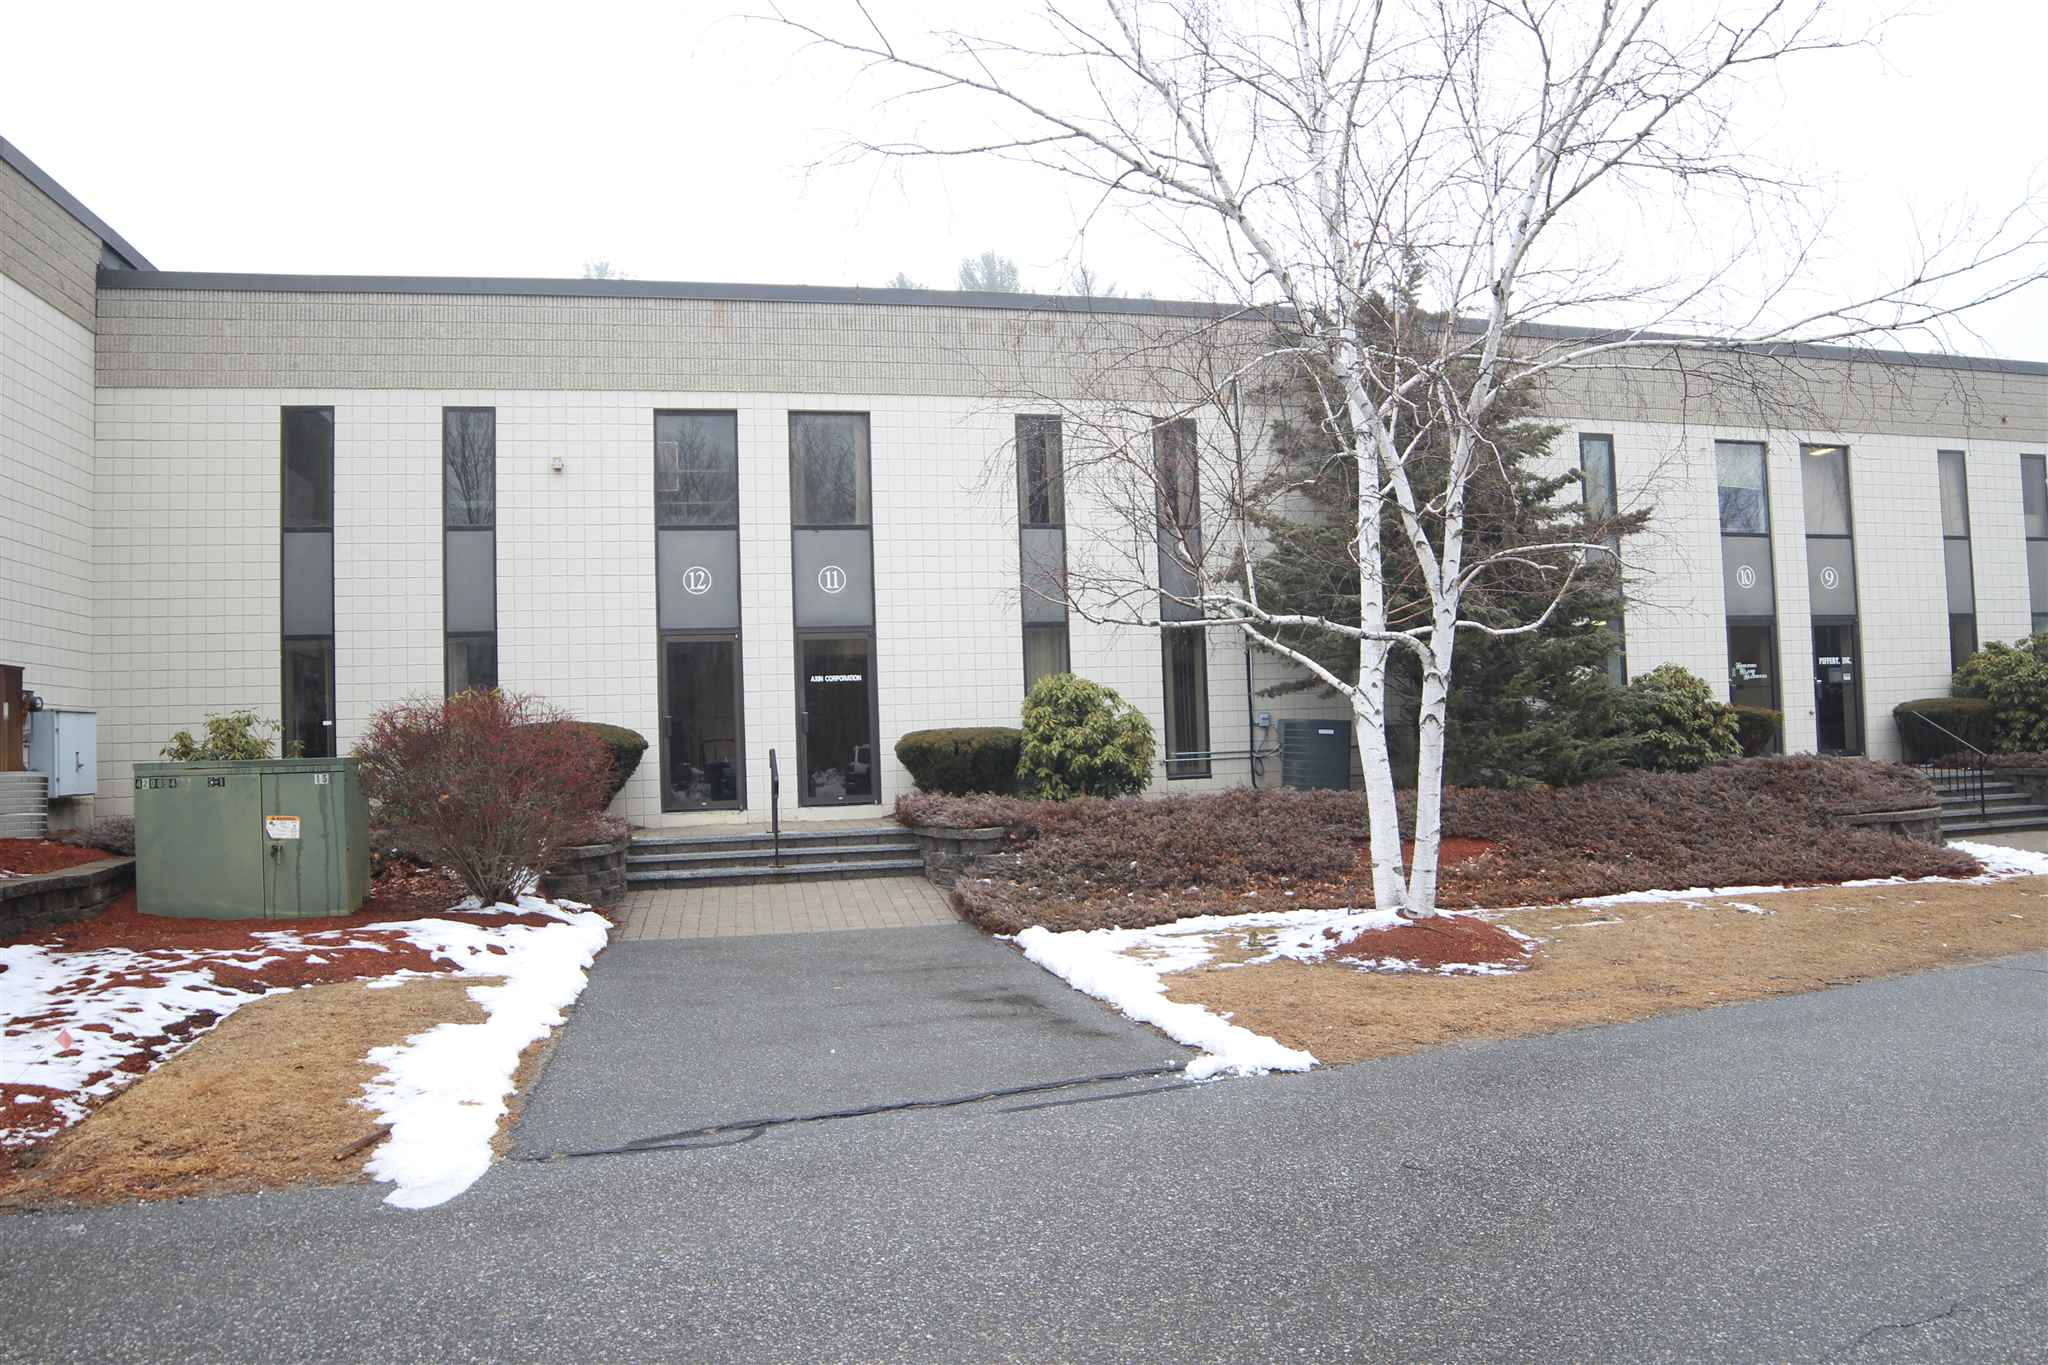 MLS 4794310: 1 Industrial Park Drive-Unit 11, Pelham NH